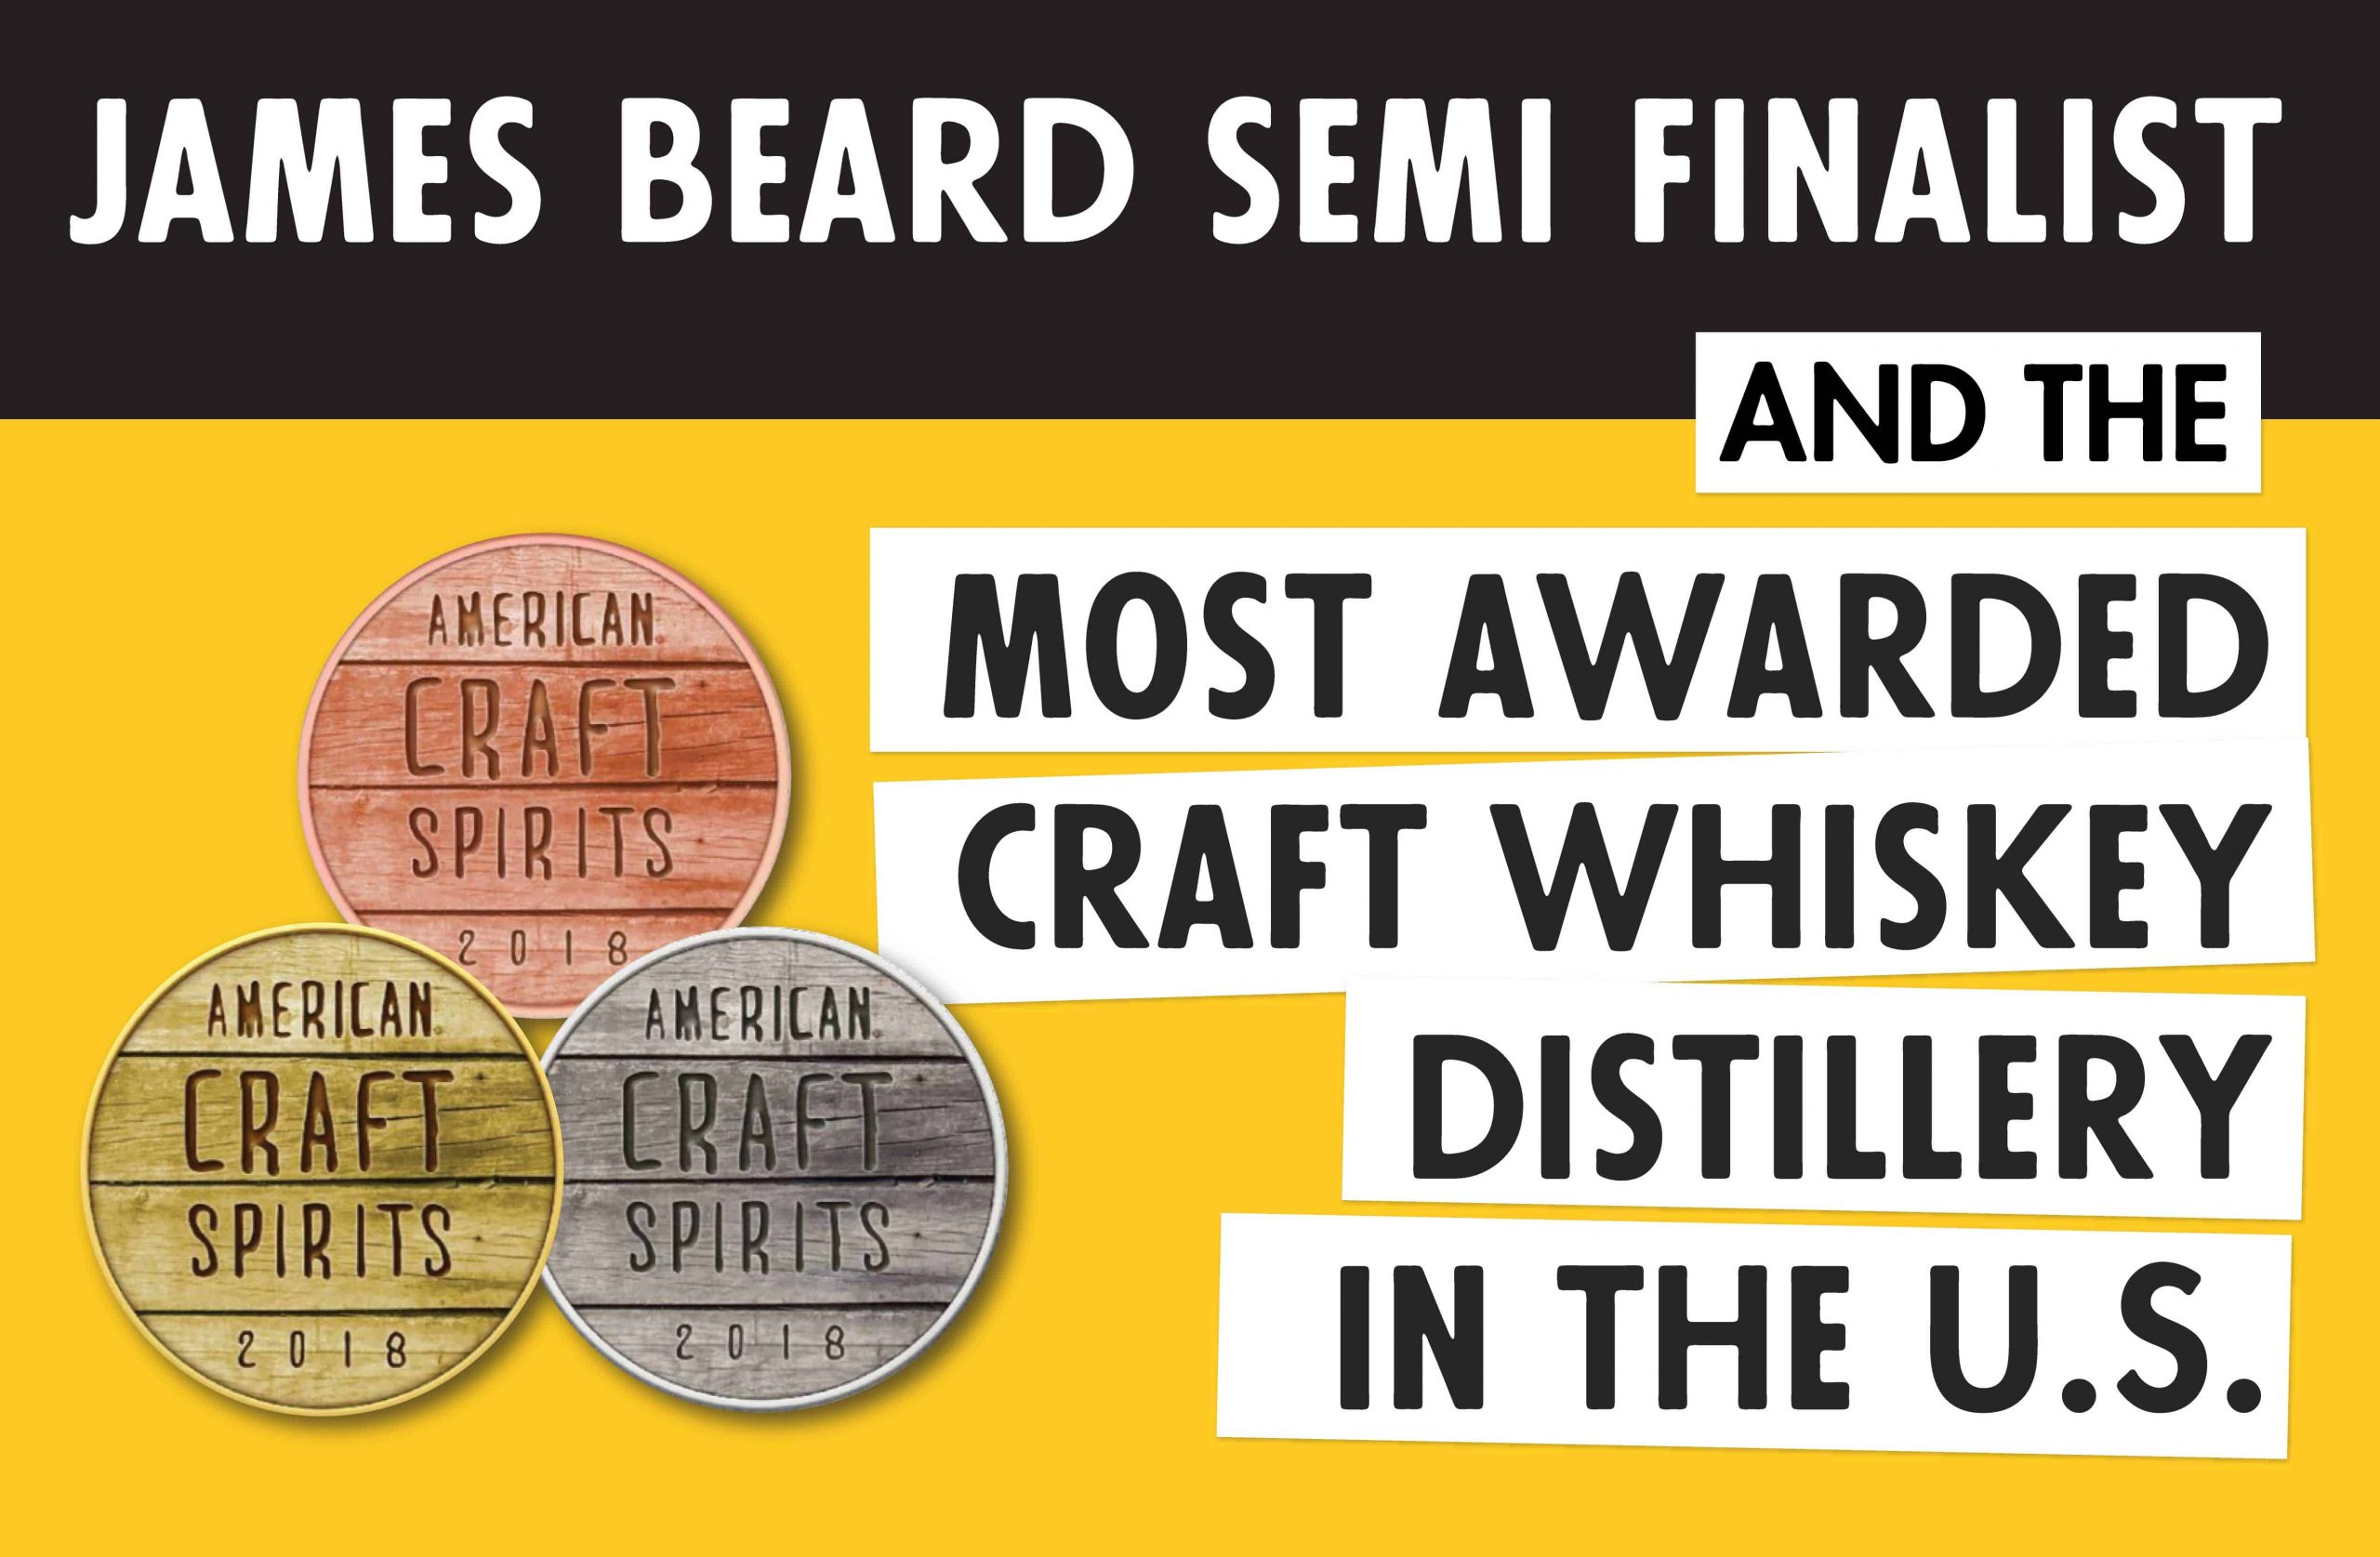 James Beard Semi Finalist and the Most Awarded Craft Whiskey Distillery in the U.S.